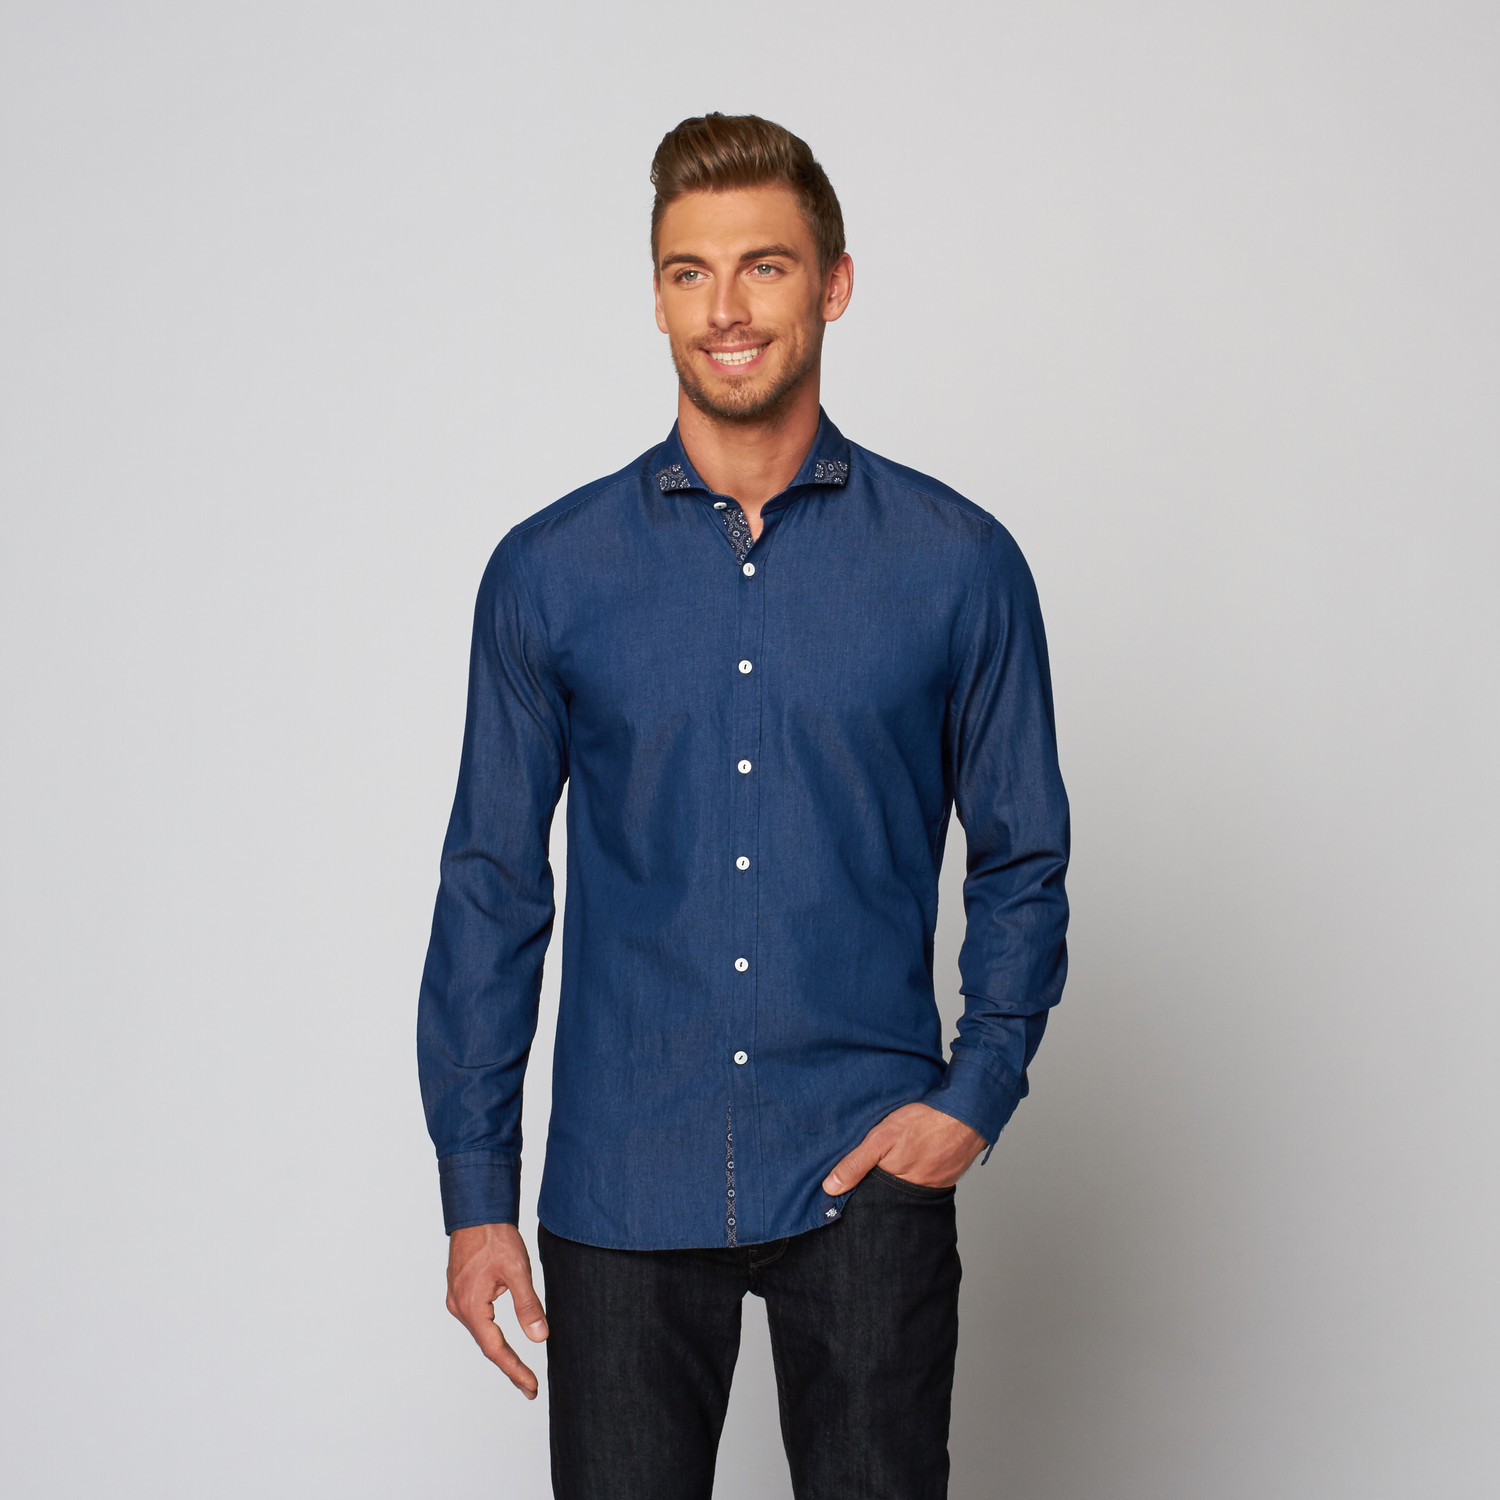 Match a long-sleeve shirt with our western suits and bolo ties, or go more casual with a western t-shirt and denim jeans. All of our cowboy shirts are on sale, so happy shopping! All of our cowboy shirts are on sale, so happy shopping!